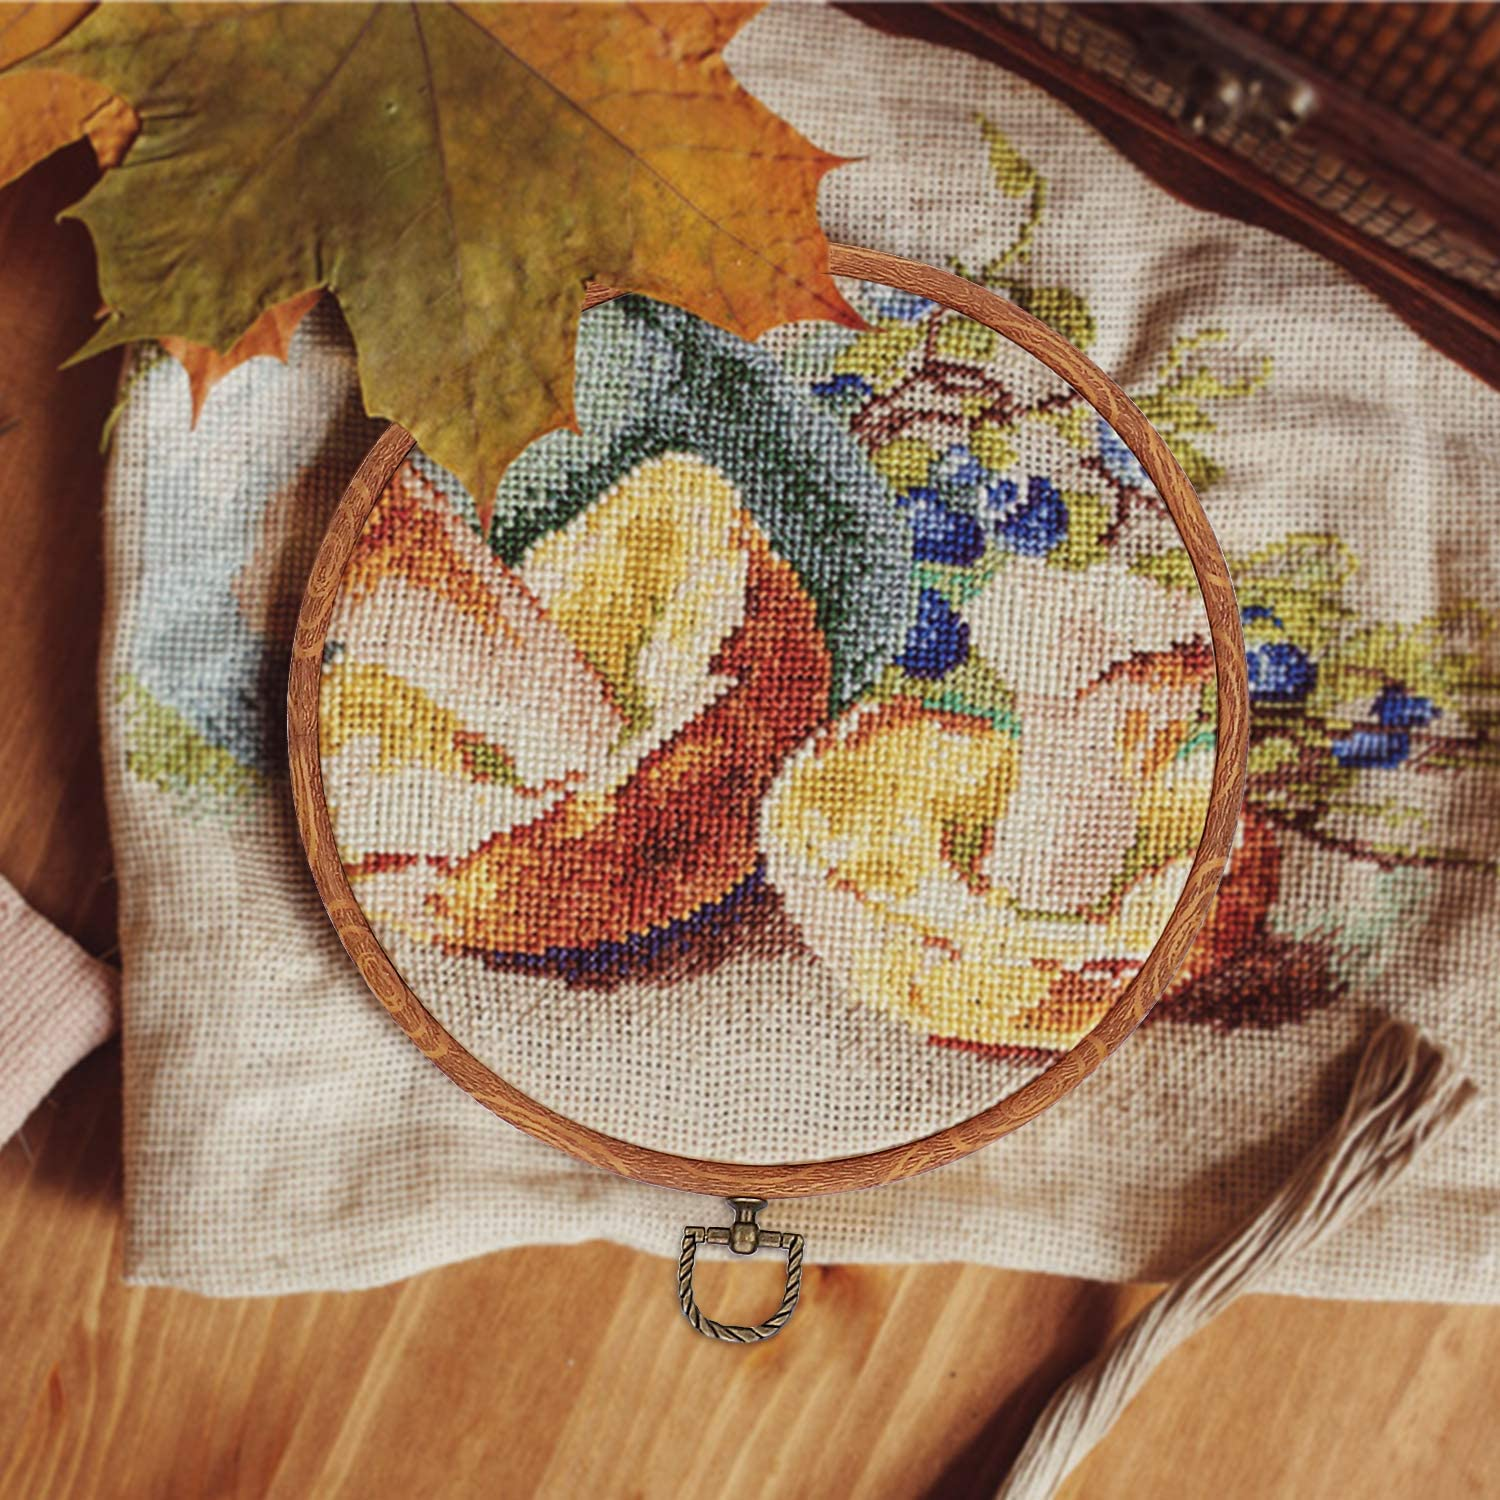 Useekoo Embroidery Hoops,Rubber Plastic Cross Stitch Hoop Set,Embroidery Kit for Sewing//Art//Hanging//Craft,4pcs